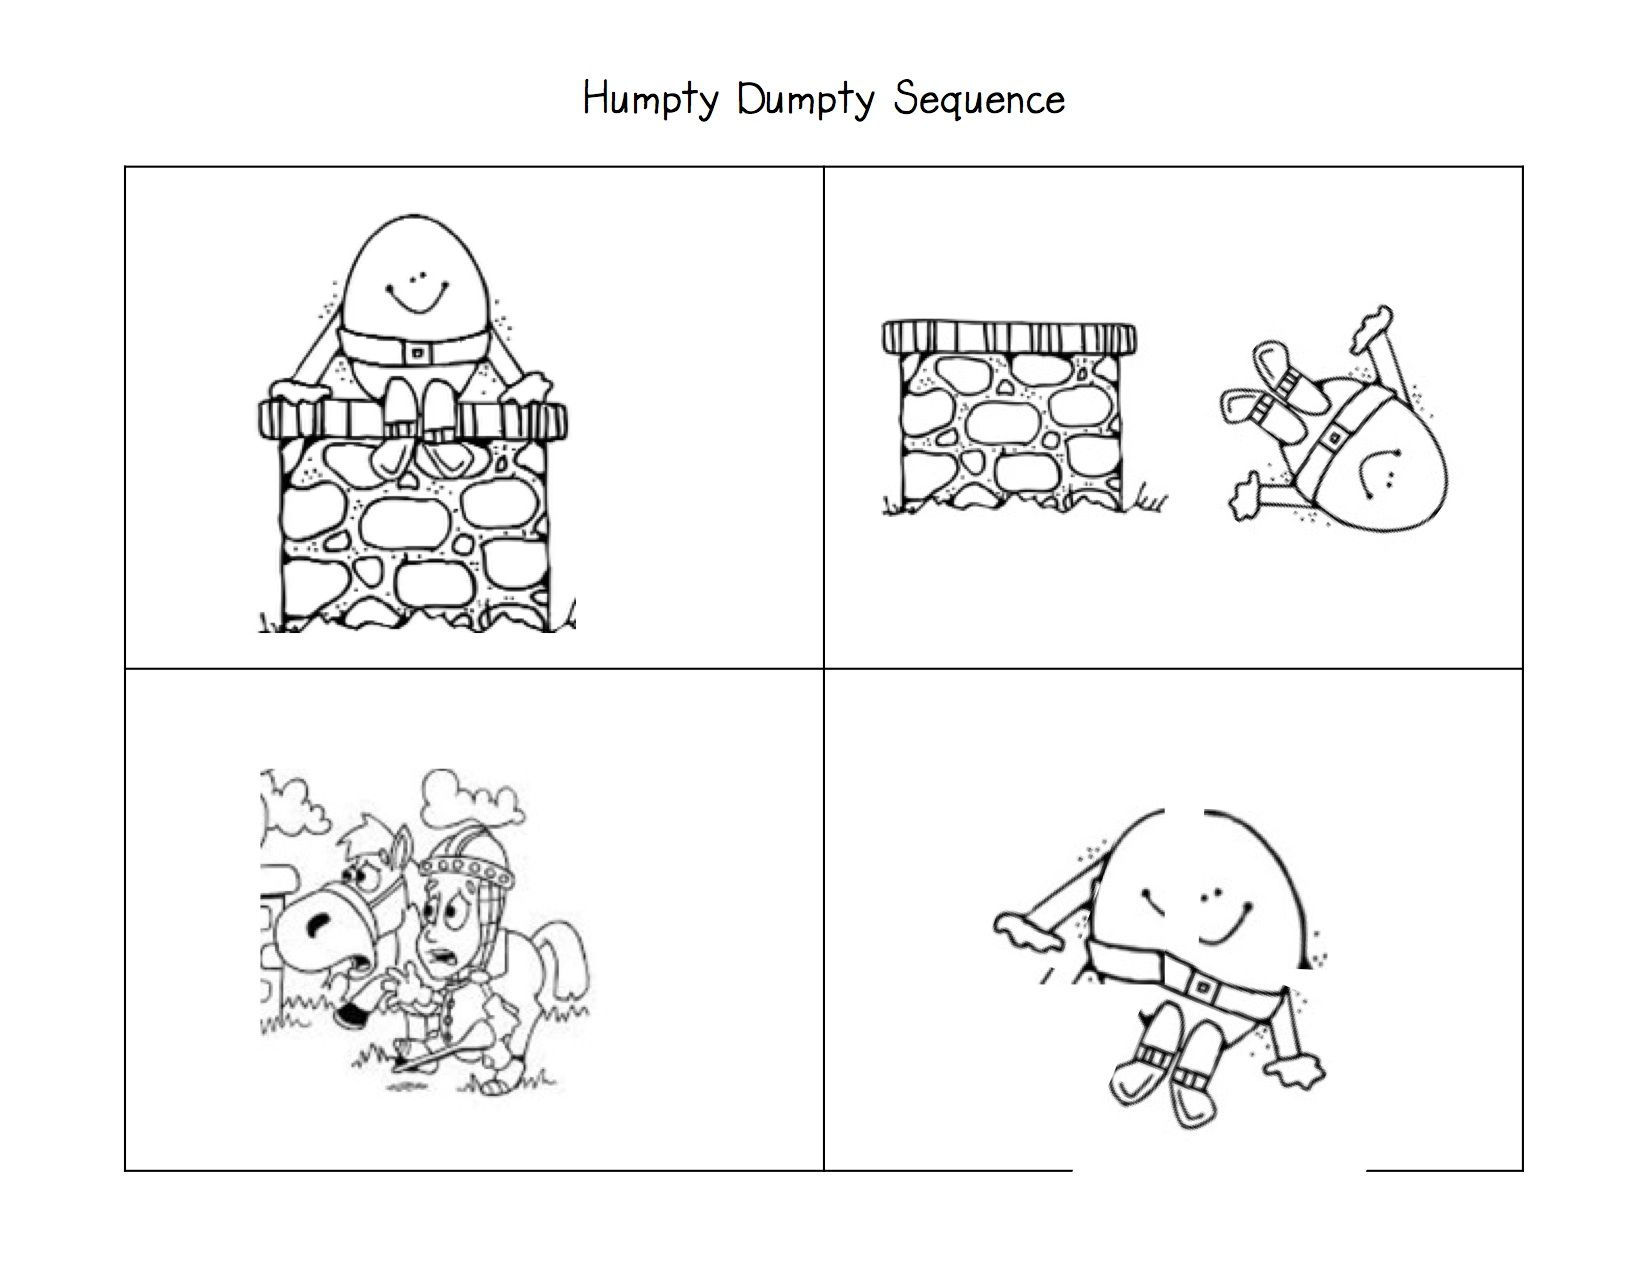 More Fun With Nursery Rhymes! | Literacy: Nursery Rhymes | Nursery - Printable Humpty Dumpty Puzzle